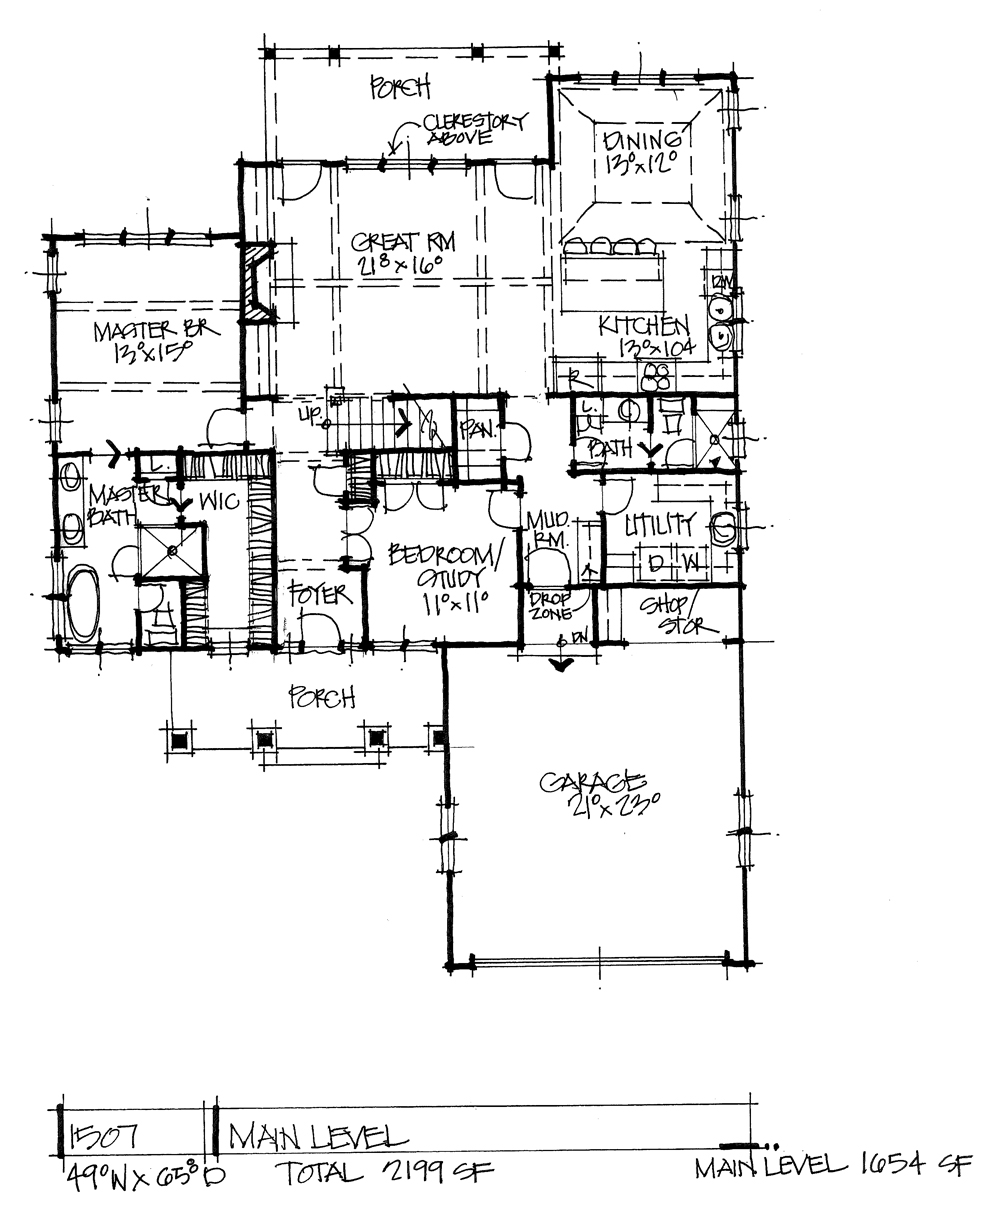 Check out the first floor of conceptual house plan 1507.